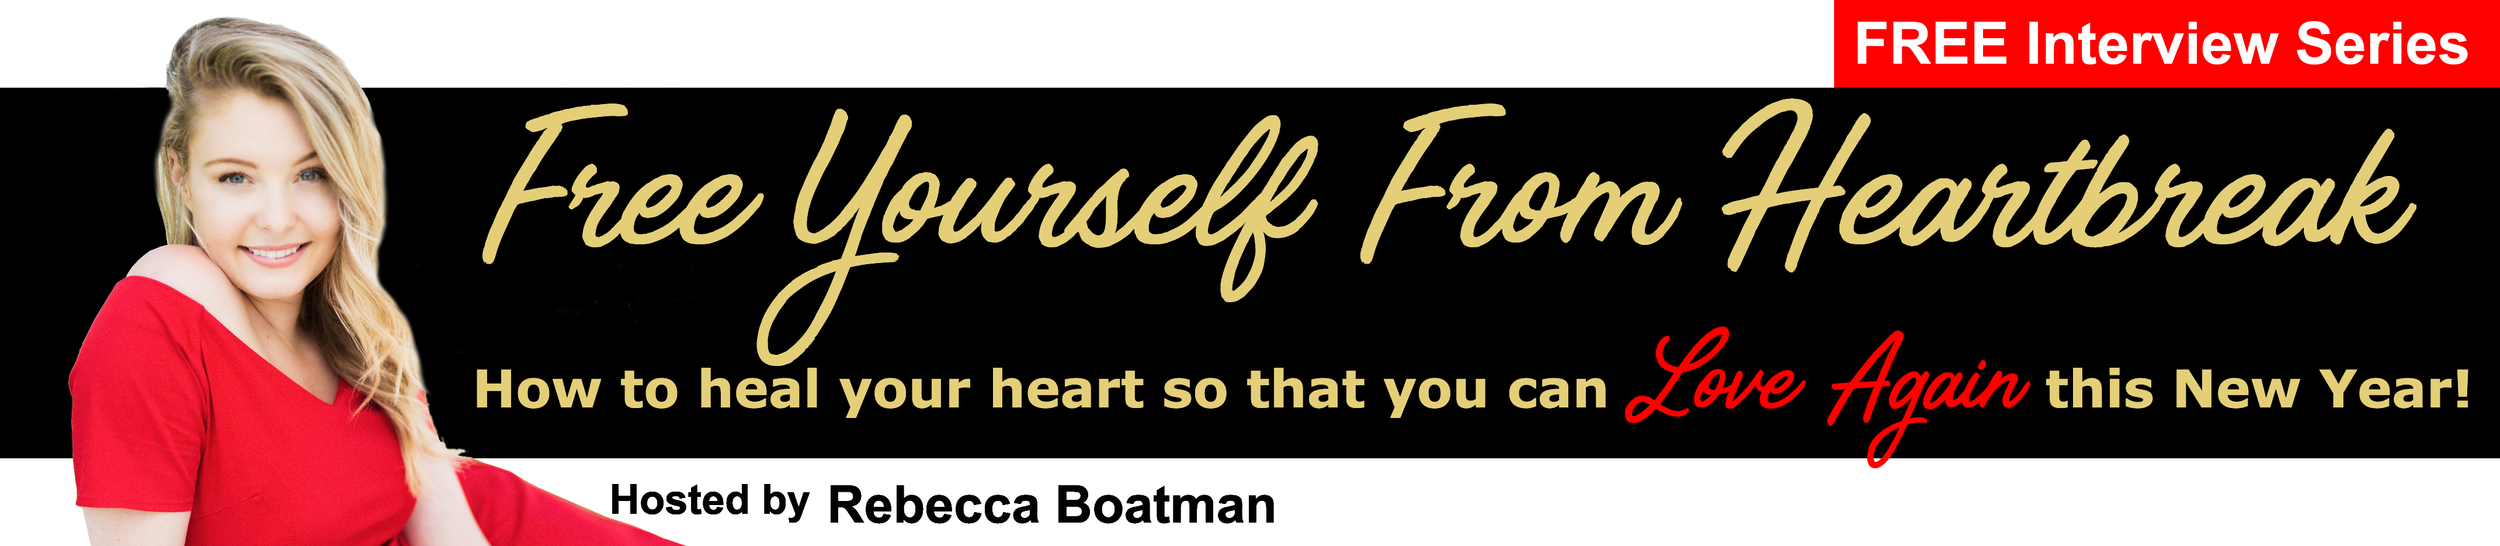 Rebecca_s-Banner-updated.png